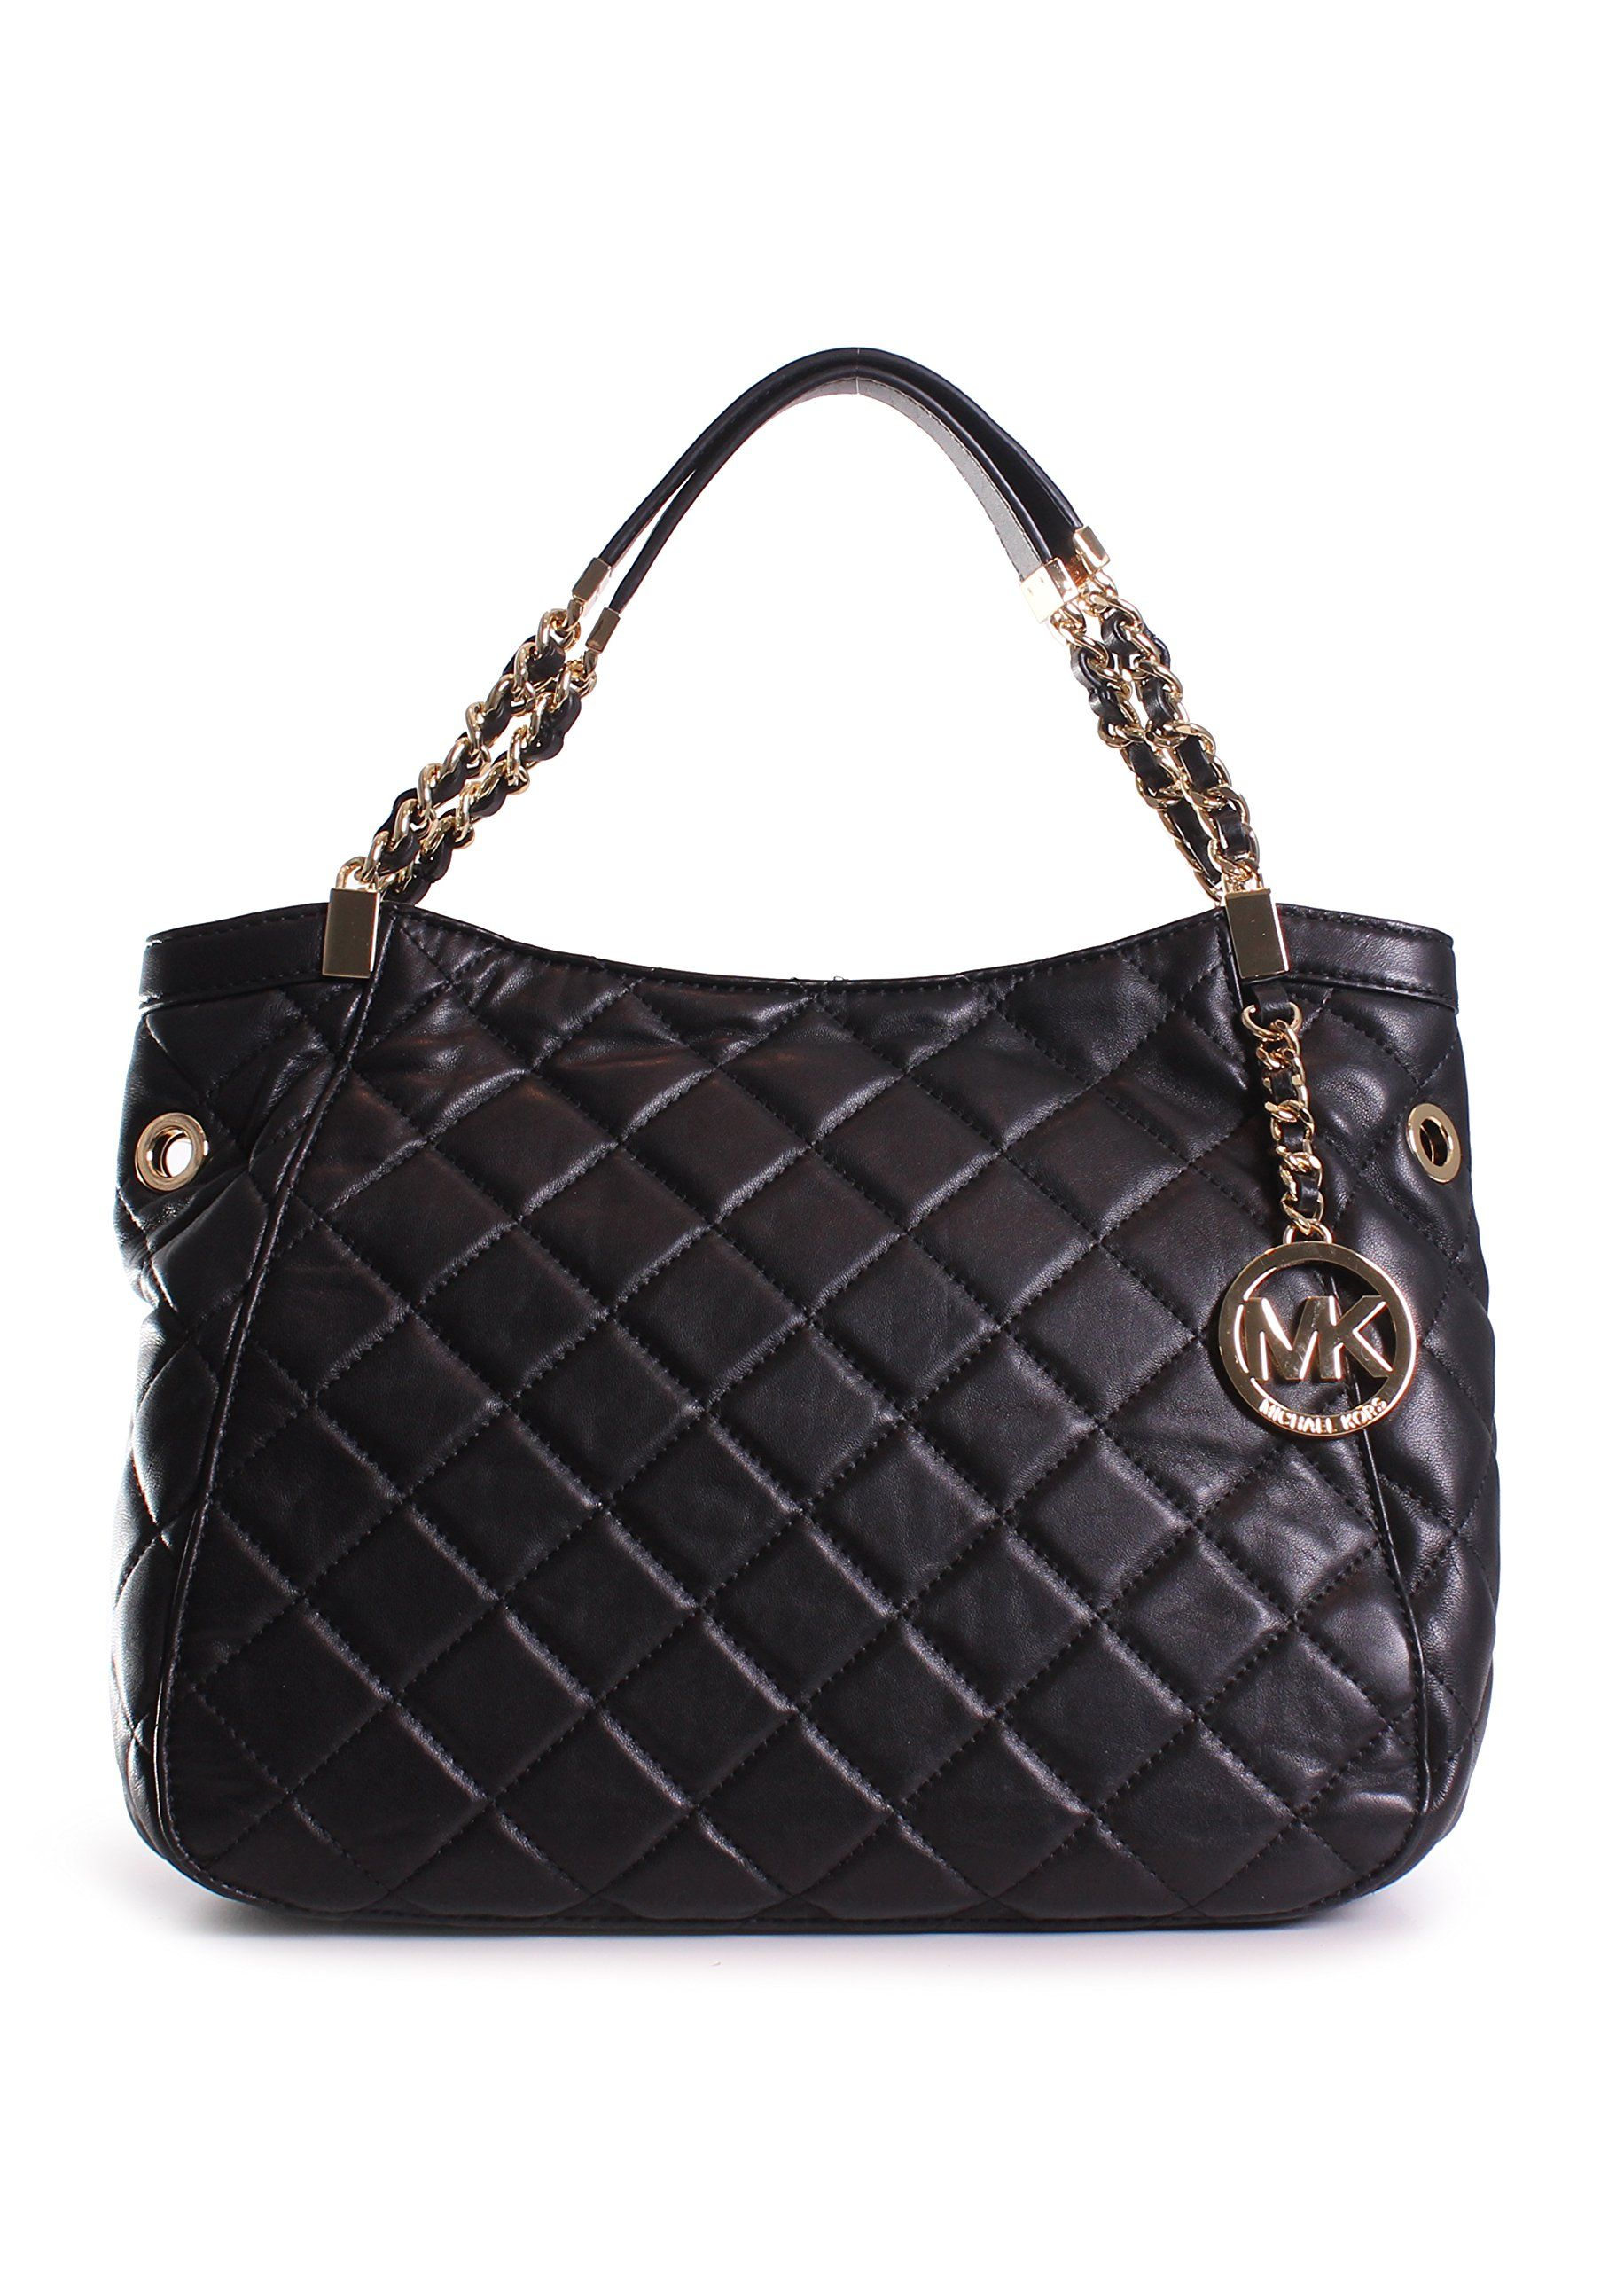 9a989d282f9b Michael Kors Susannah Medium Shoulder Tote in Black | Accessorizing ...